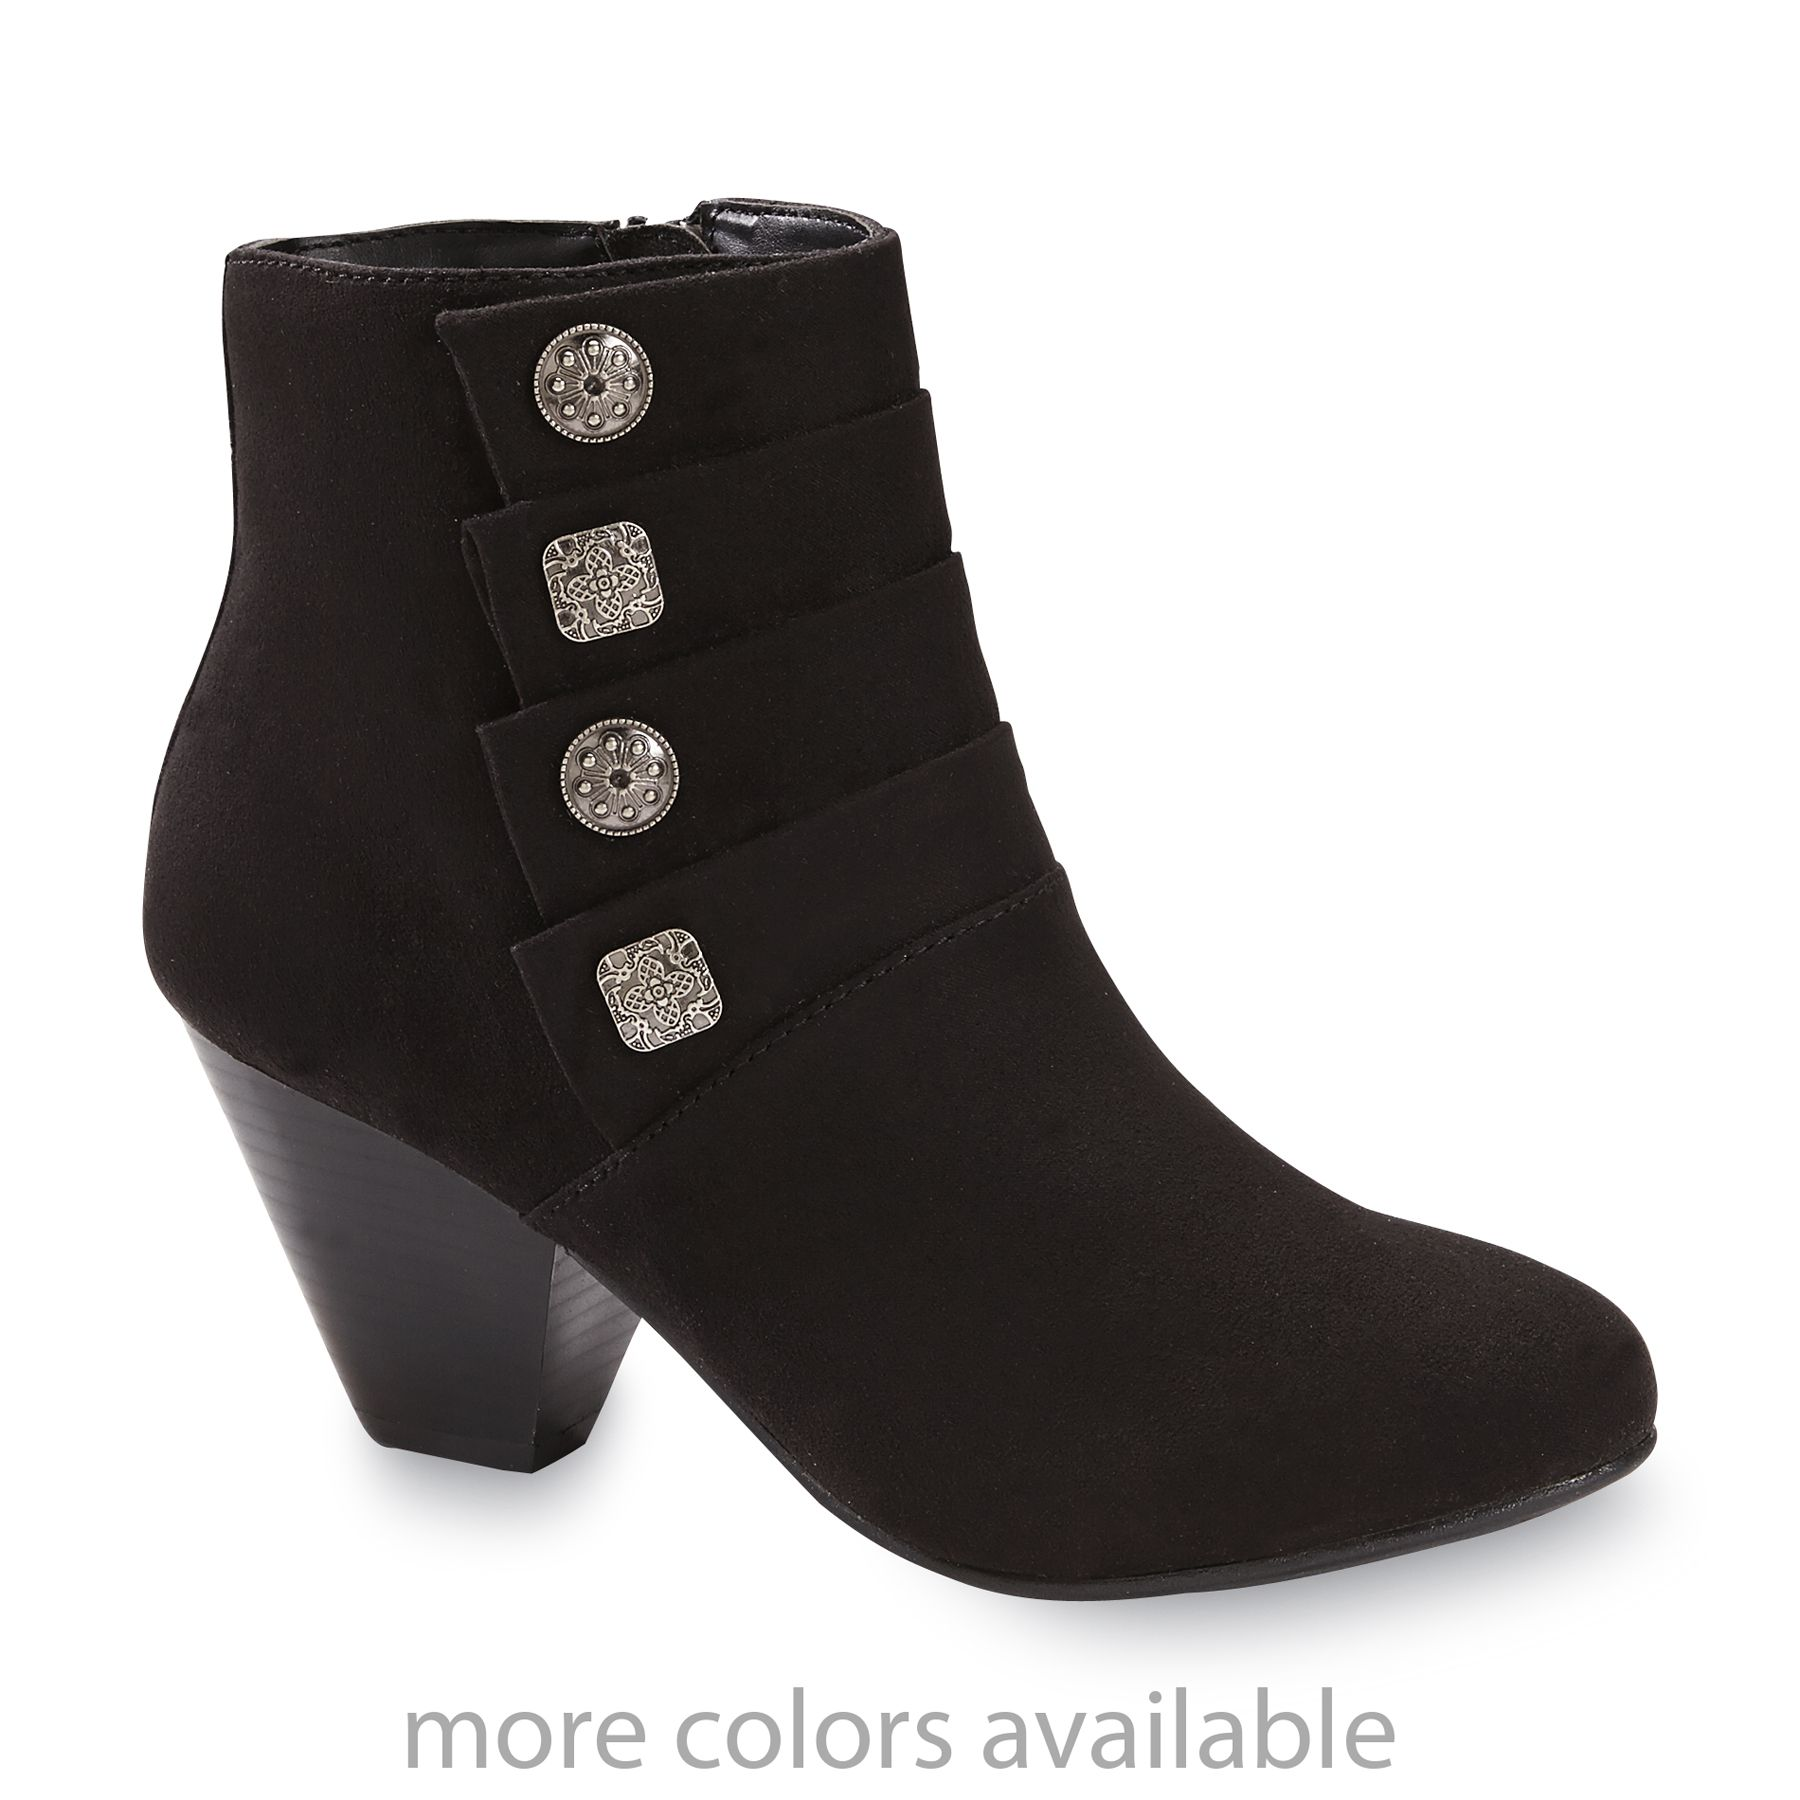 690e6f3676b6 Covington womens susan microsuede ankle boot at i thought these might be  good jpg 1800x1800 Sears